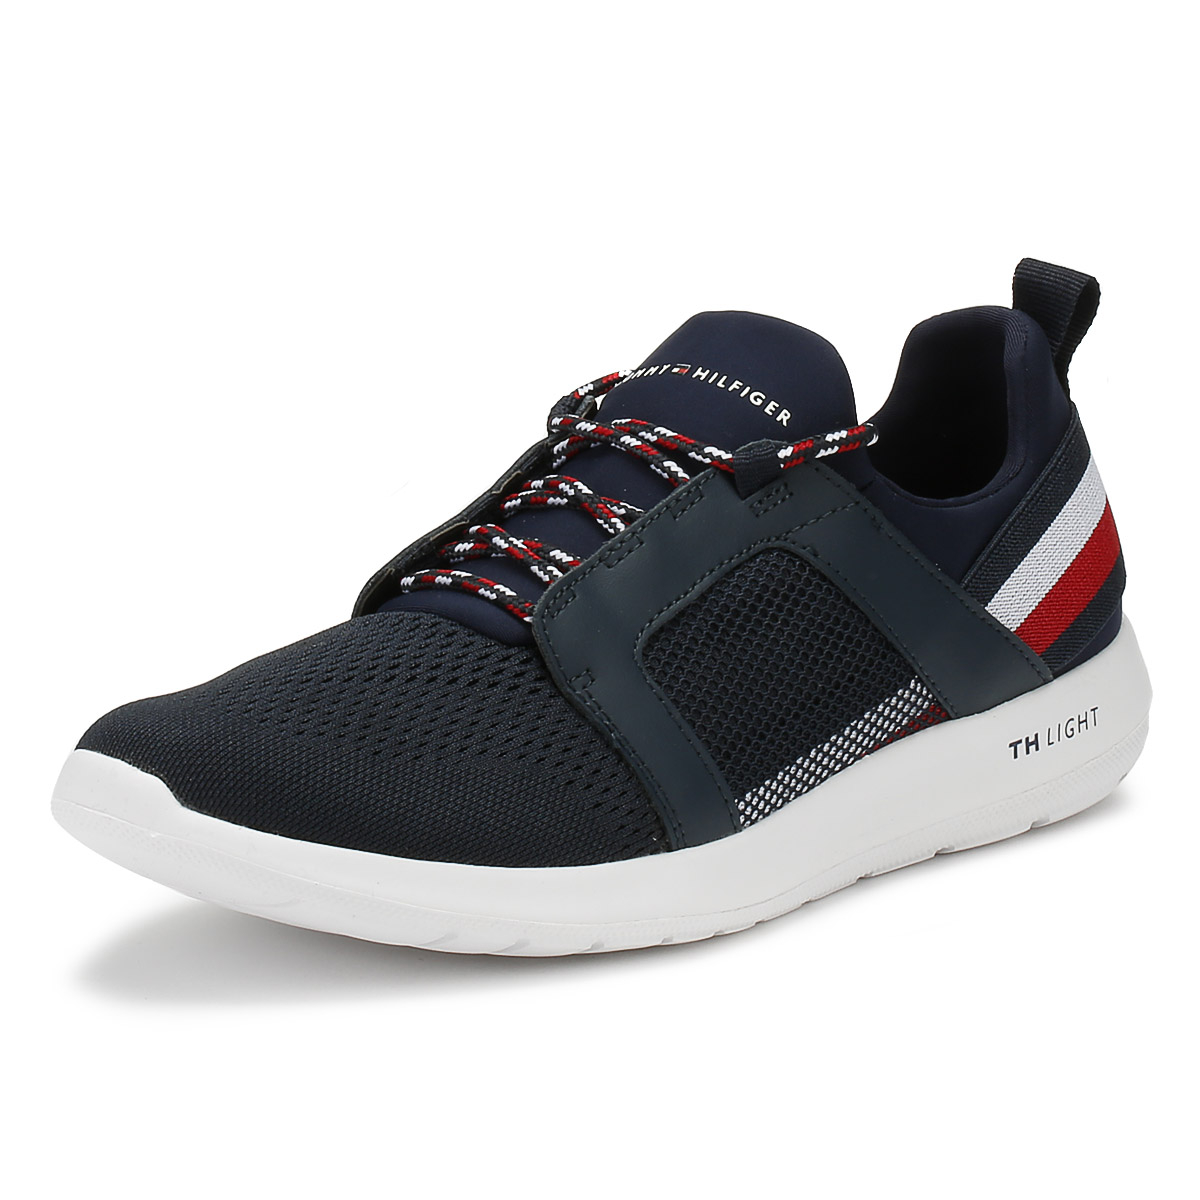 4cc2b1ad61a8 Details about Tommy Hilfiger Mens Trainers Midnight Navy Technical Material Running  Shoes